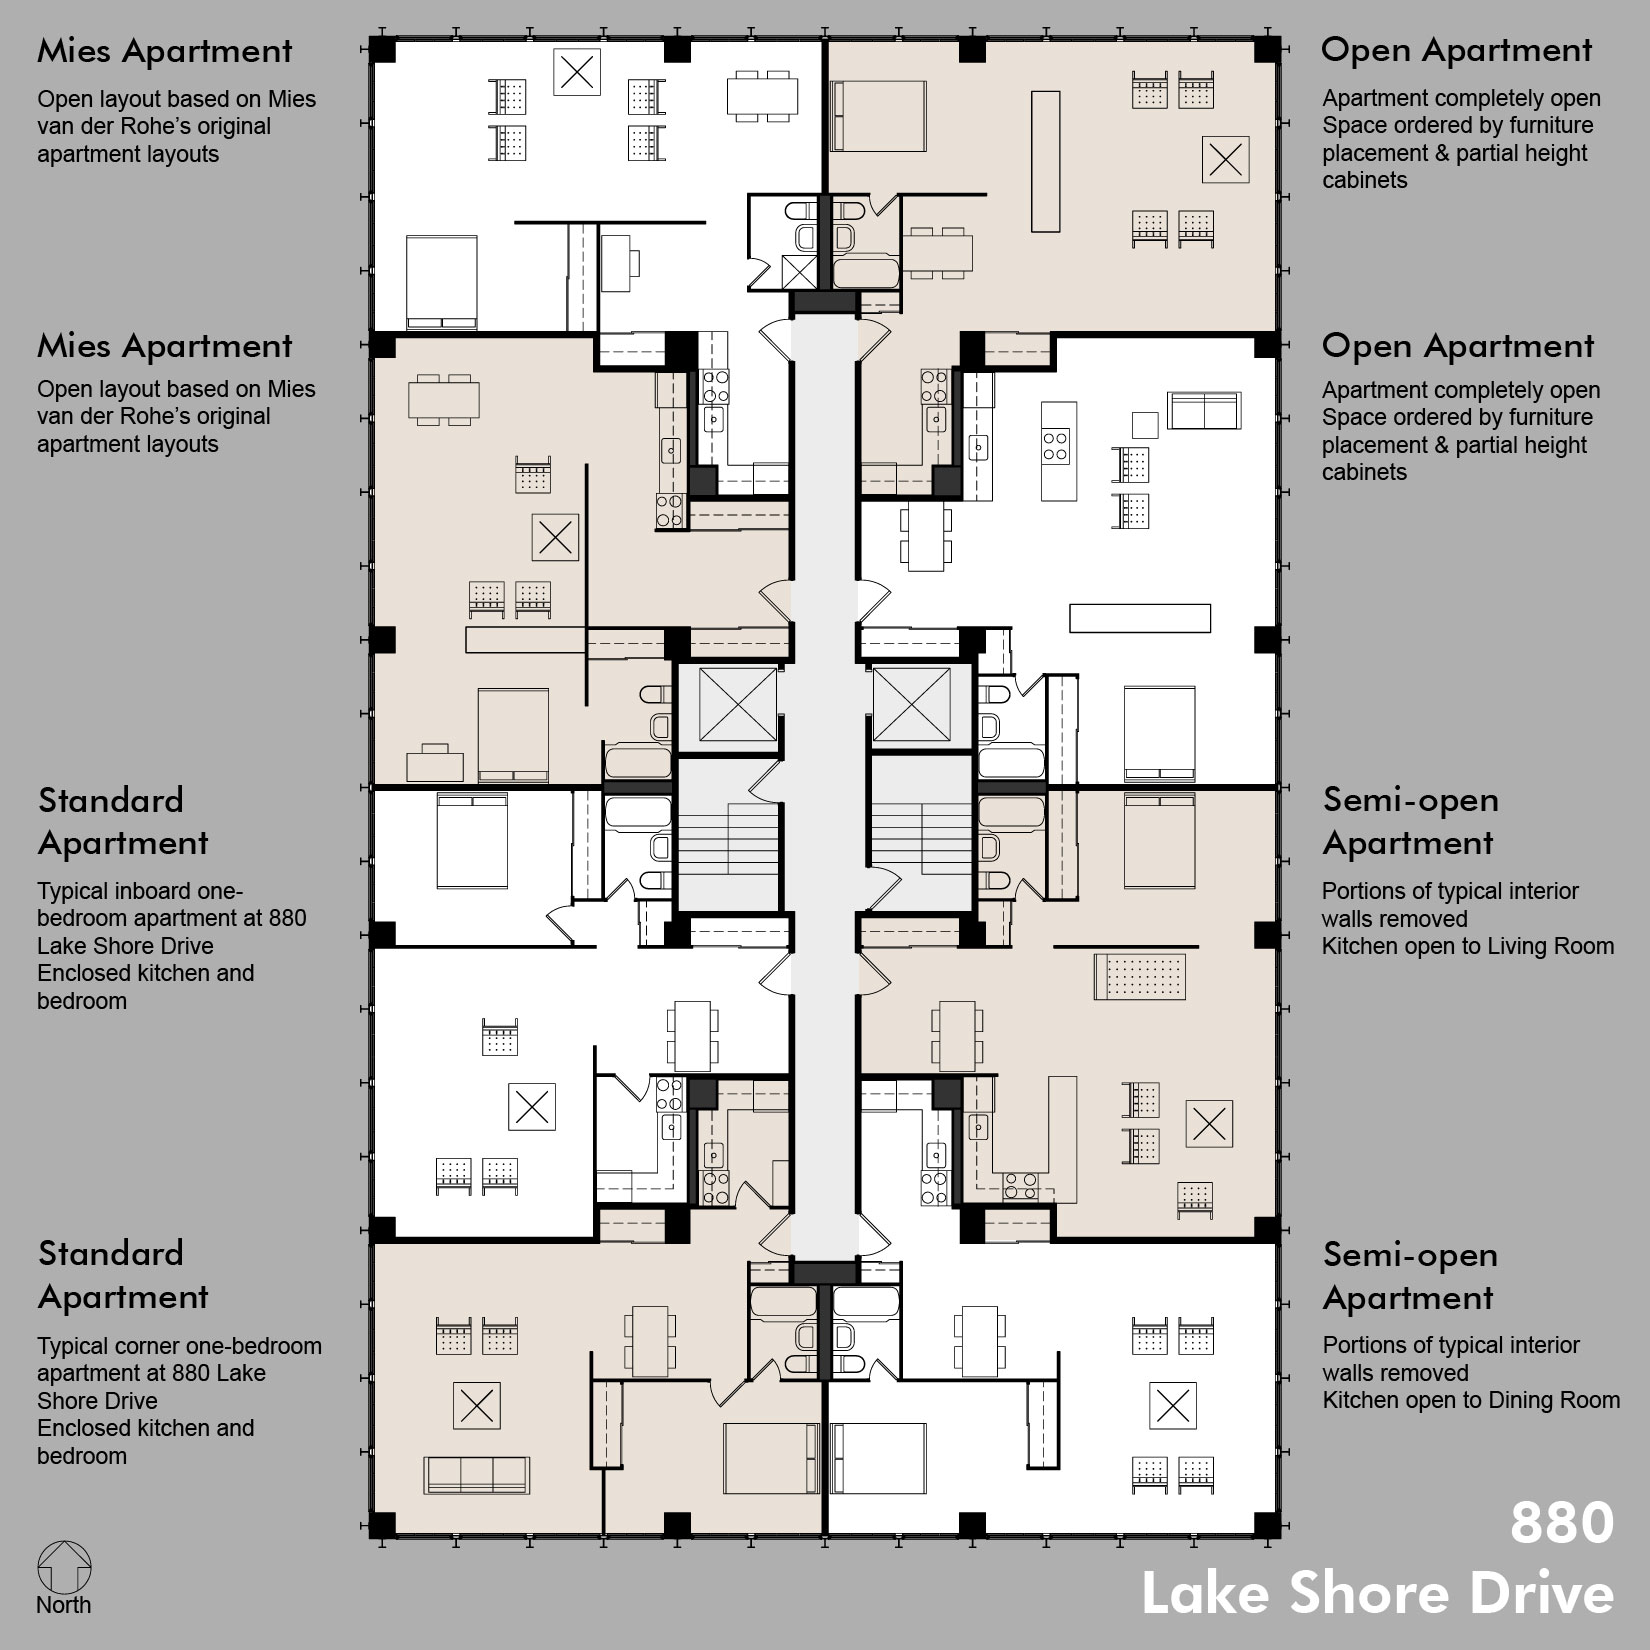 880 floor plans including standard apt Building plans and designs